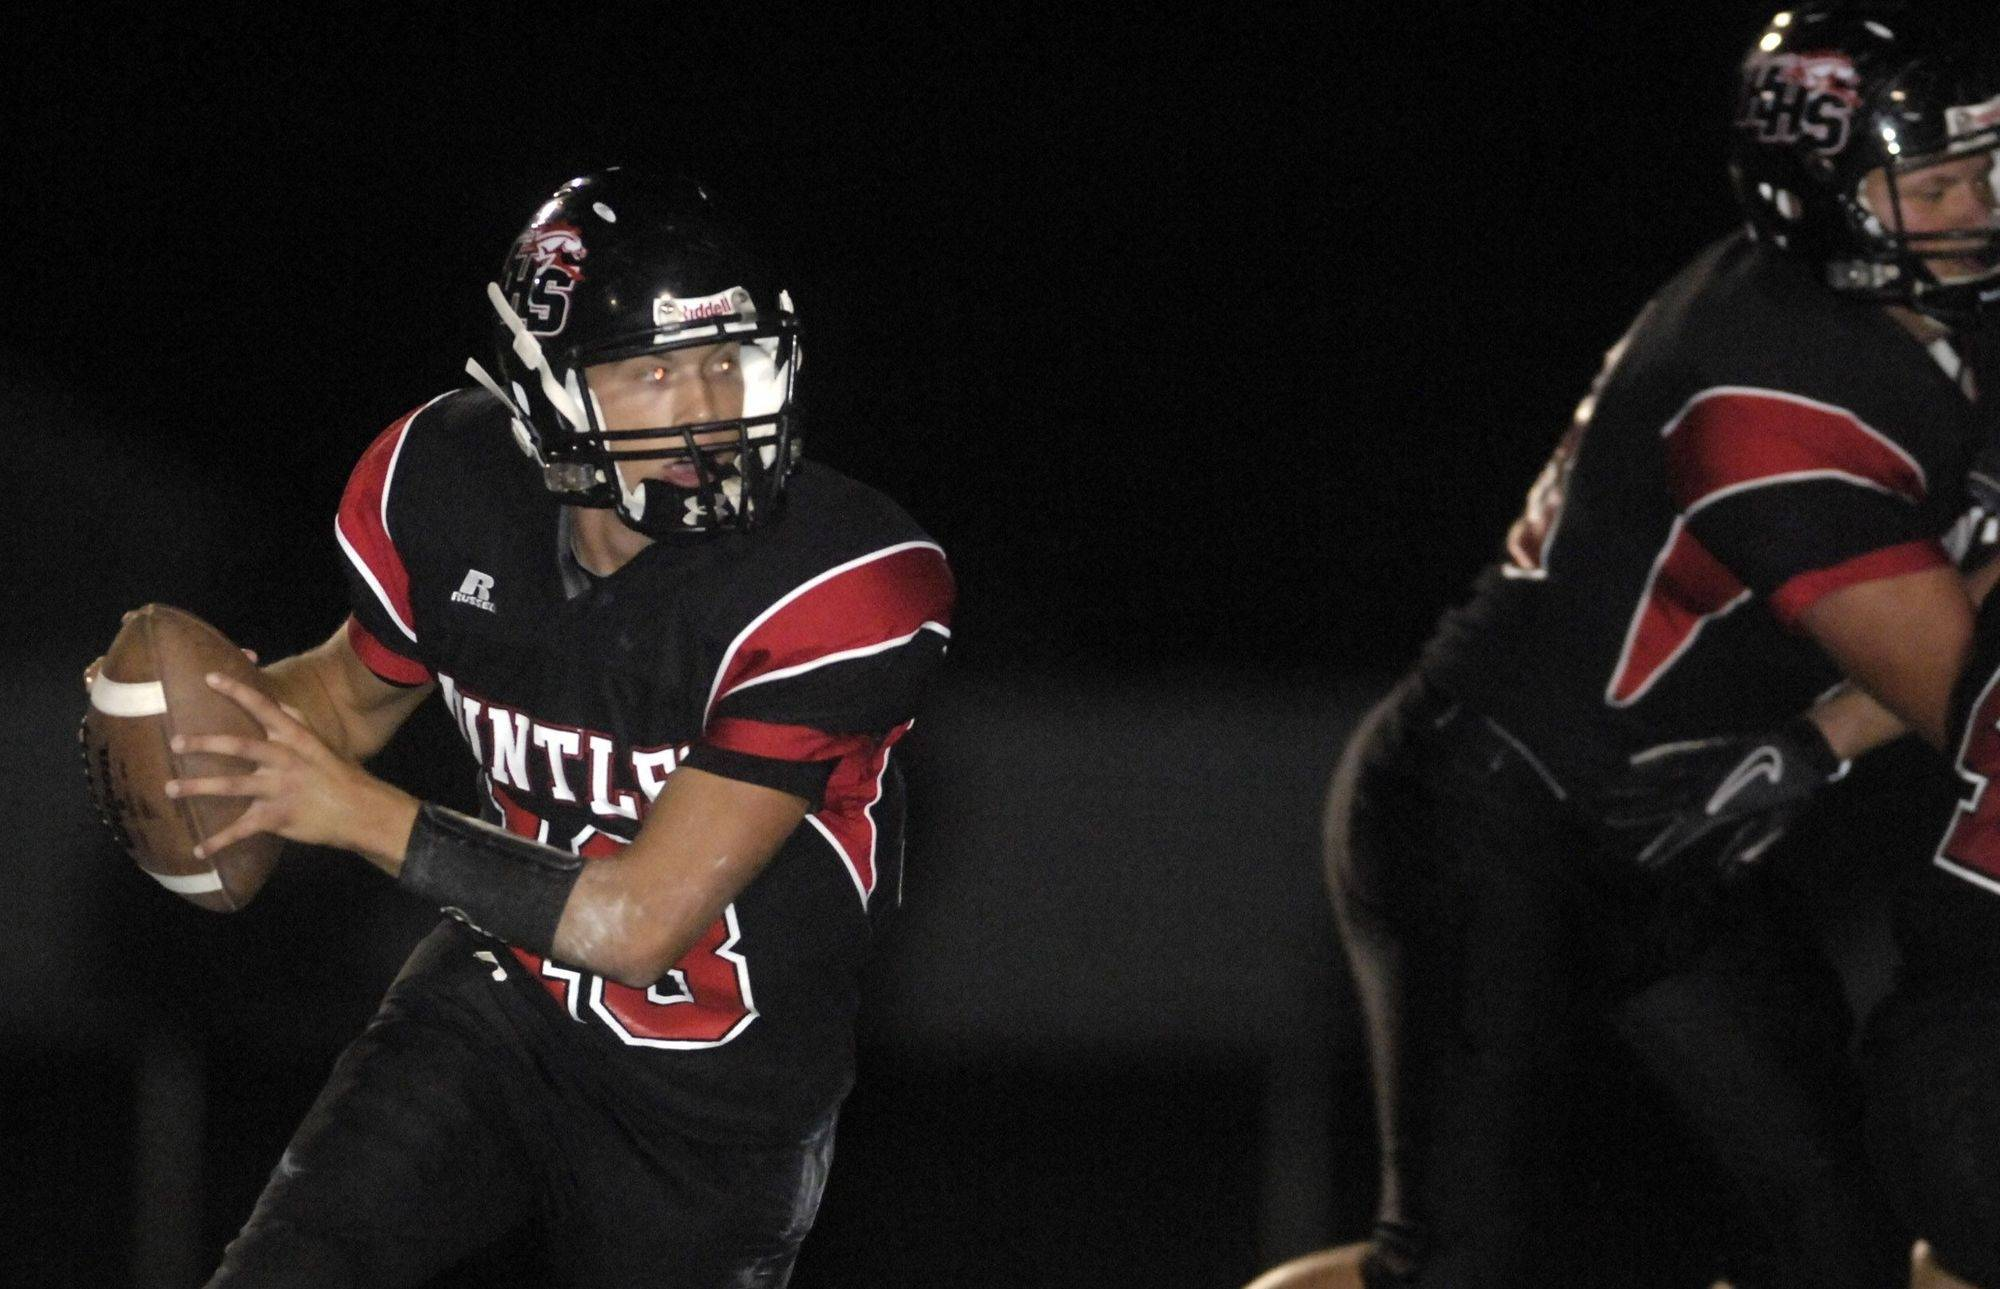 WEEK 2- Huntley quarterback Timothy Lycos rolls out to pass against Kaneland during Friday's game at Huntley.